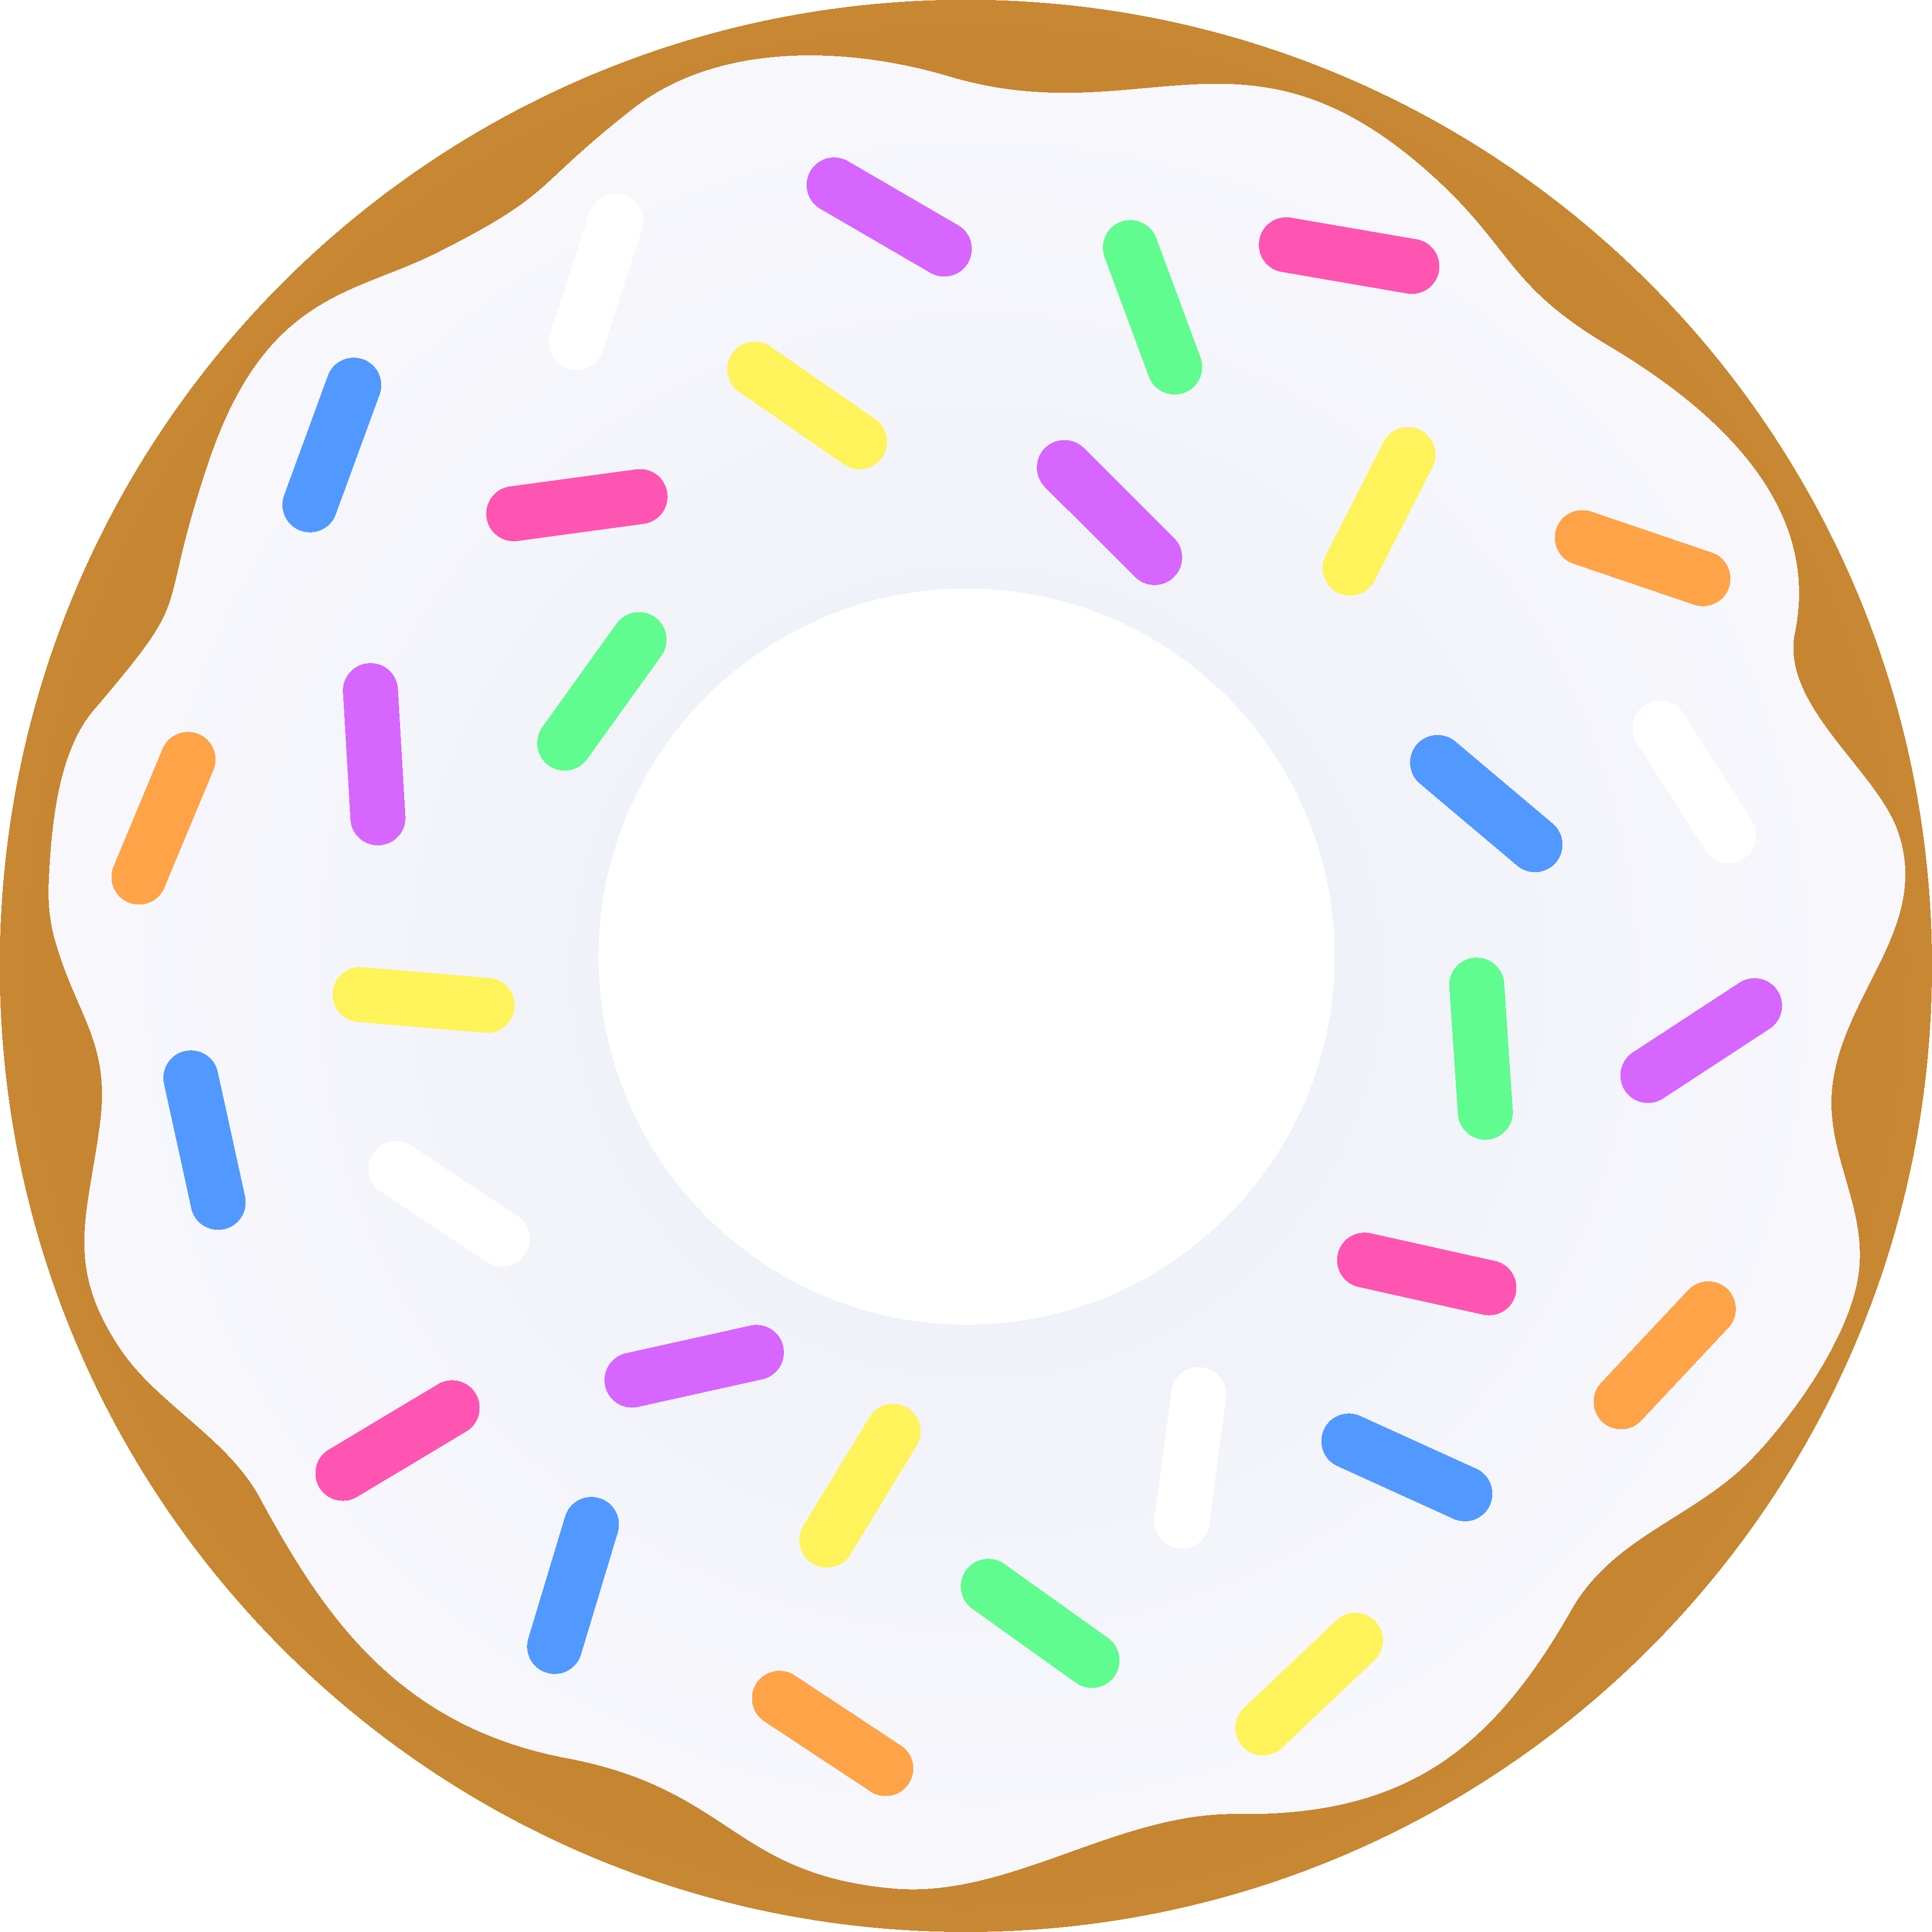 Donut clipart round object. Free donuts download clip